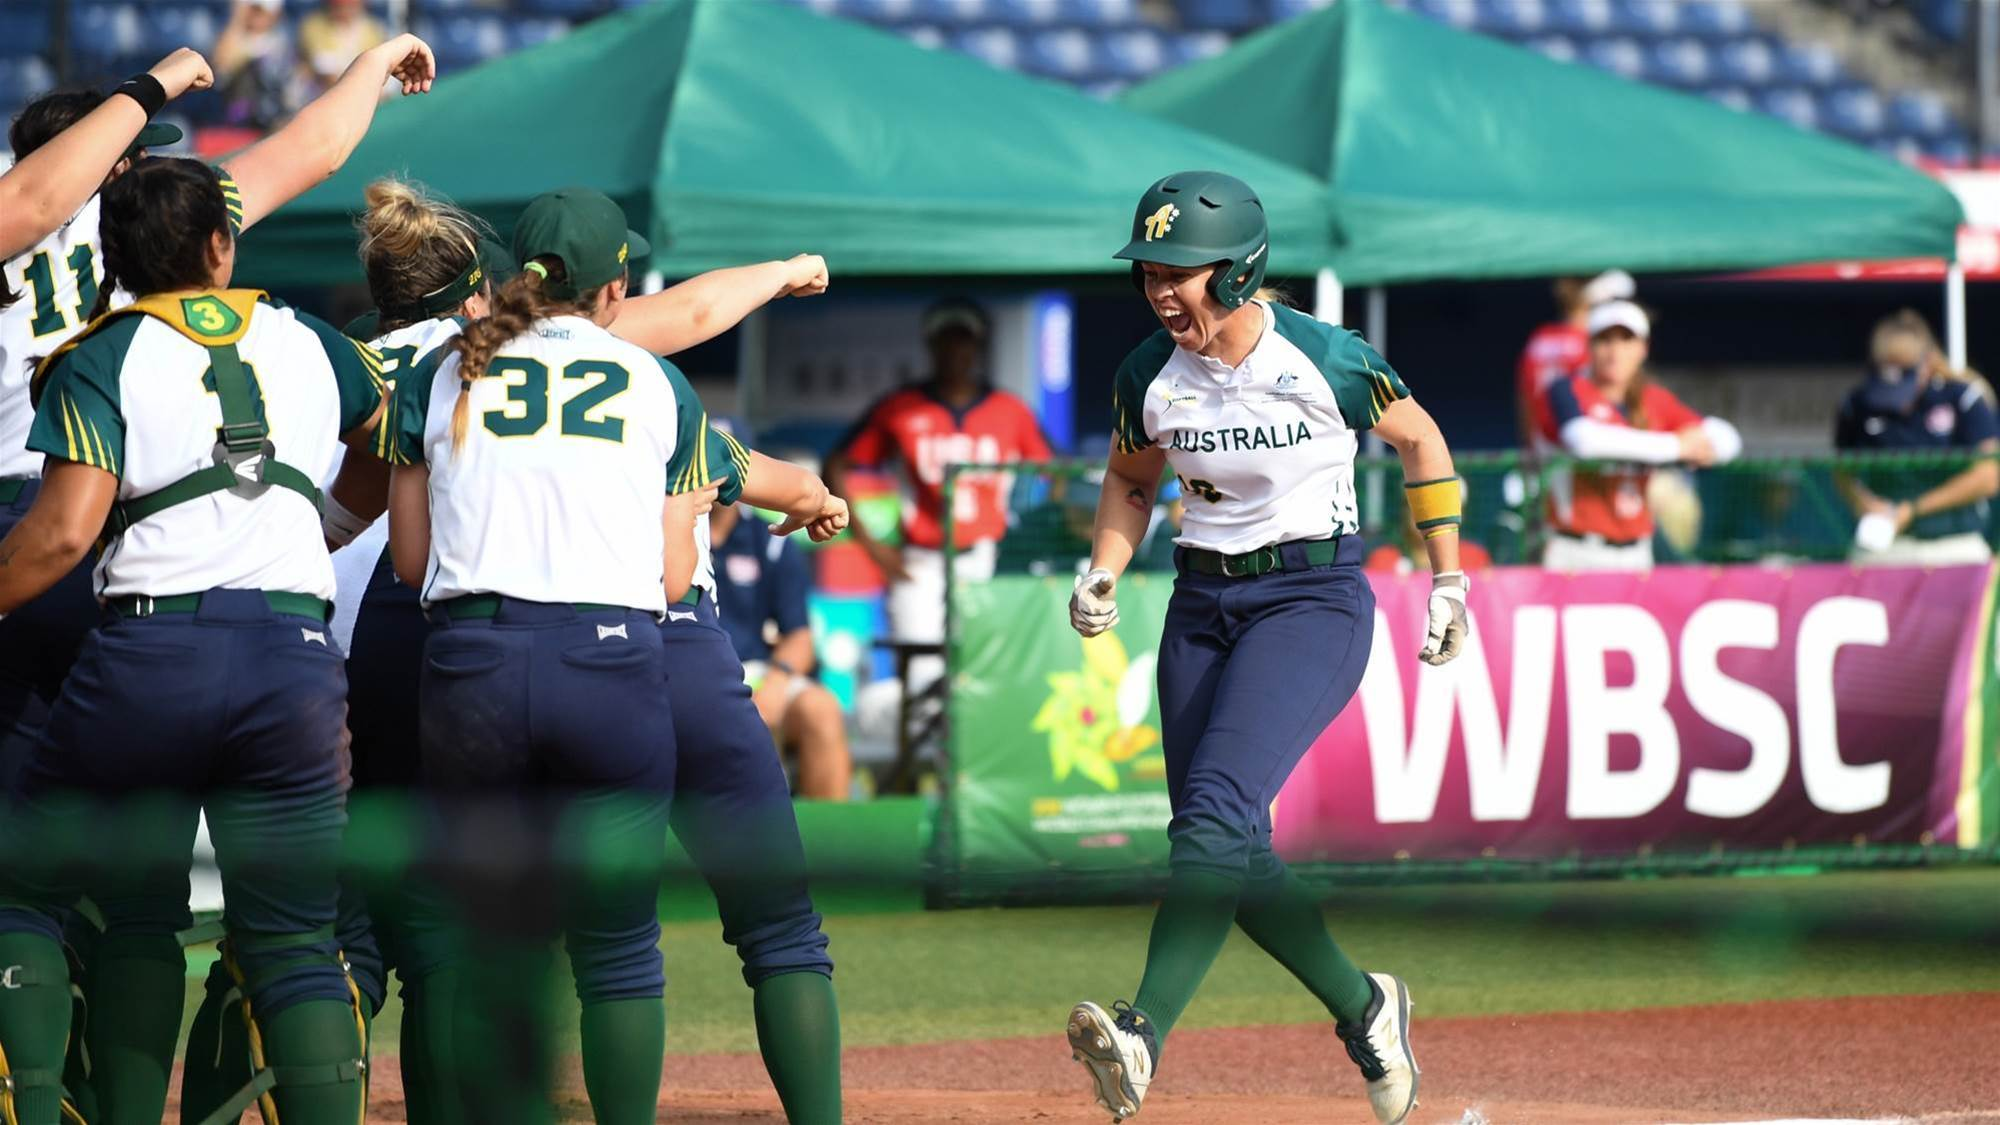 Porter Homers but Spirit Fall to USA